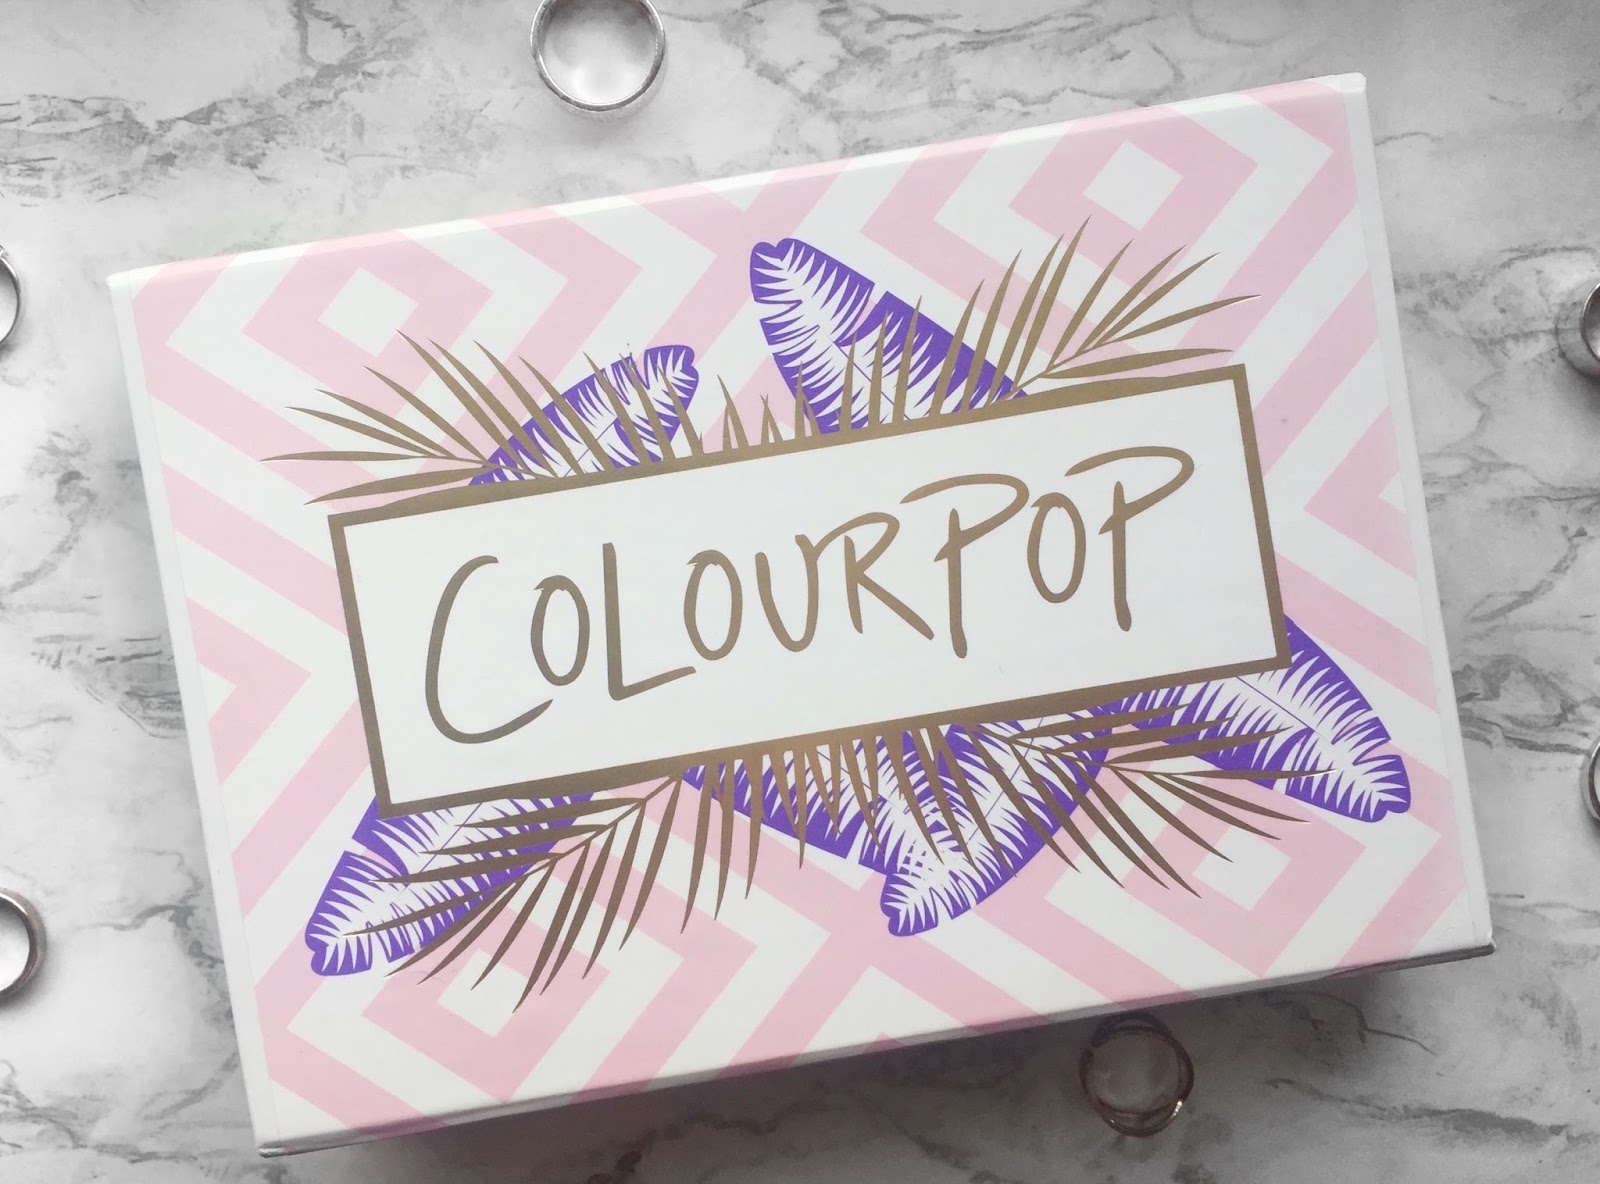 Colourpop Mile High Eyeshadow Set Packaging